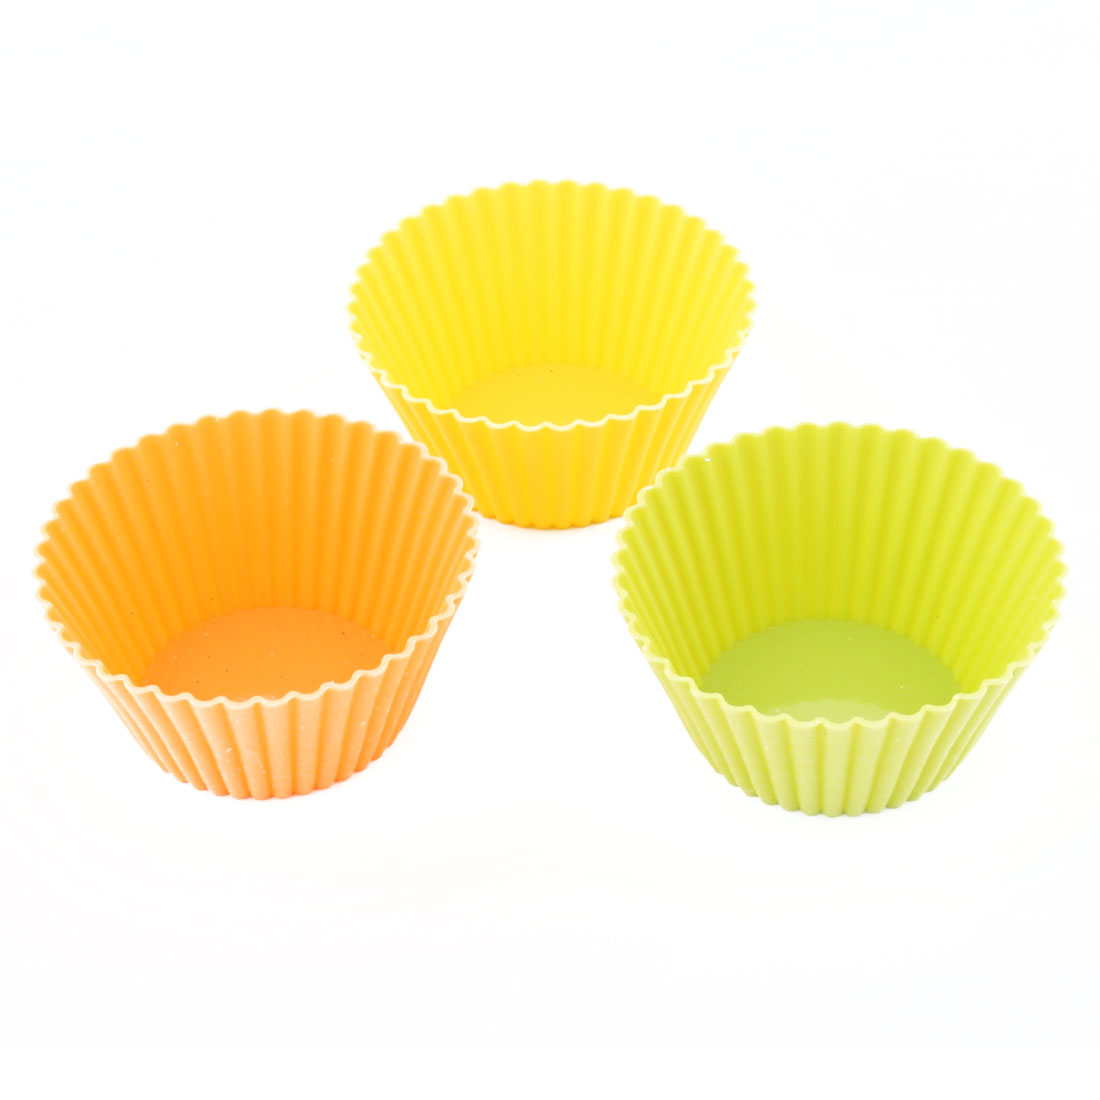 Household Silicone Cupcake Liners Molds Baking Muffin Cup 7CM Upper Diameter 3 PCS